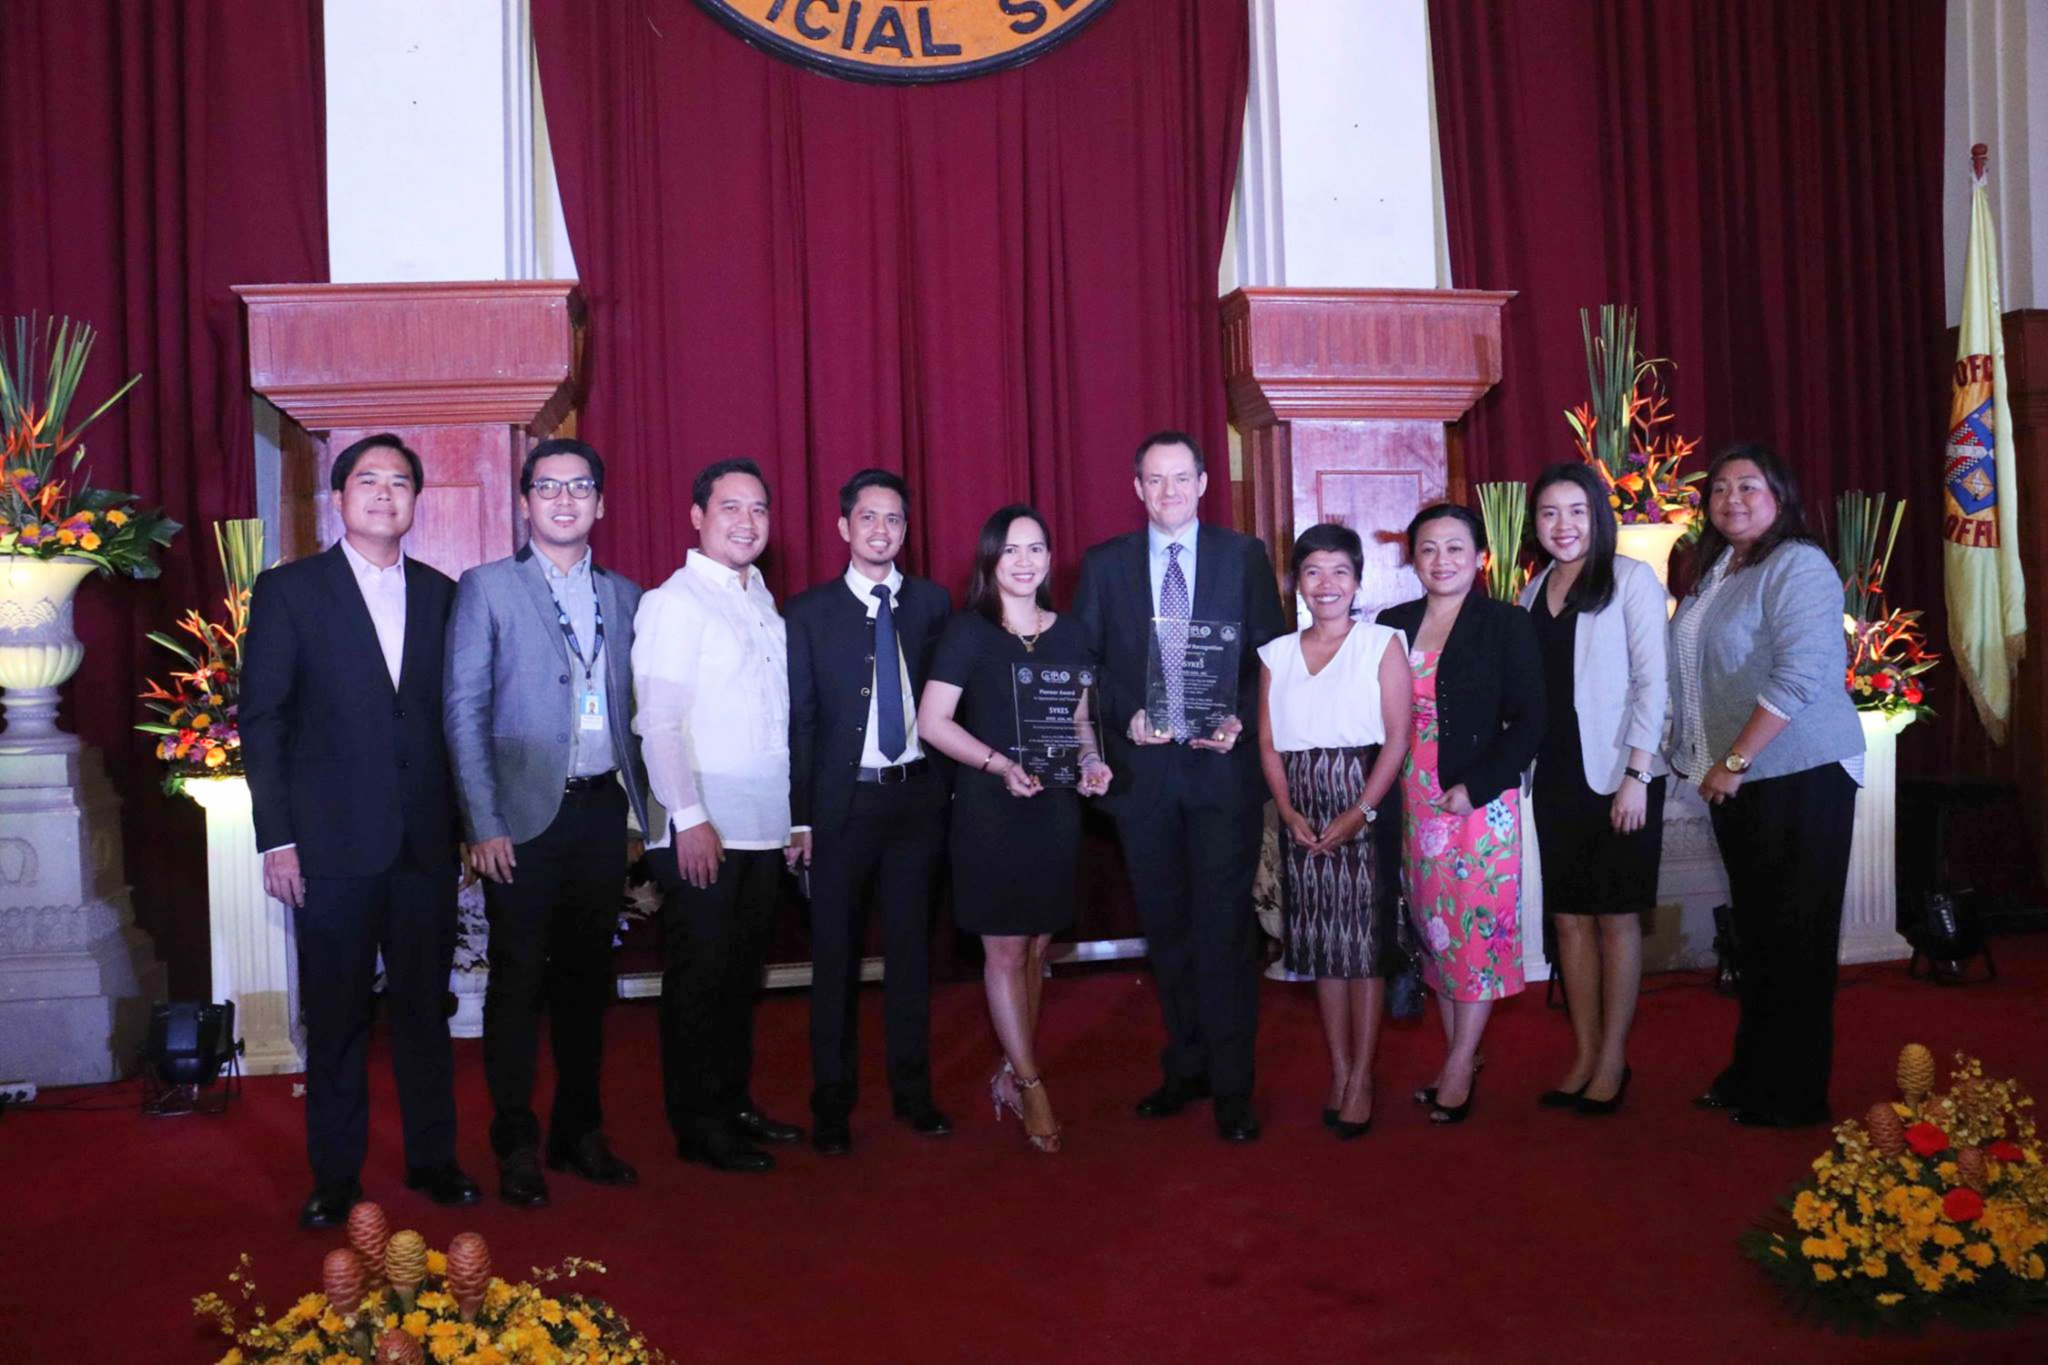 SYKES Cebu Stands Out in CIB.O's Annual IT/BPM Event